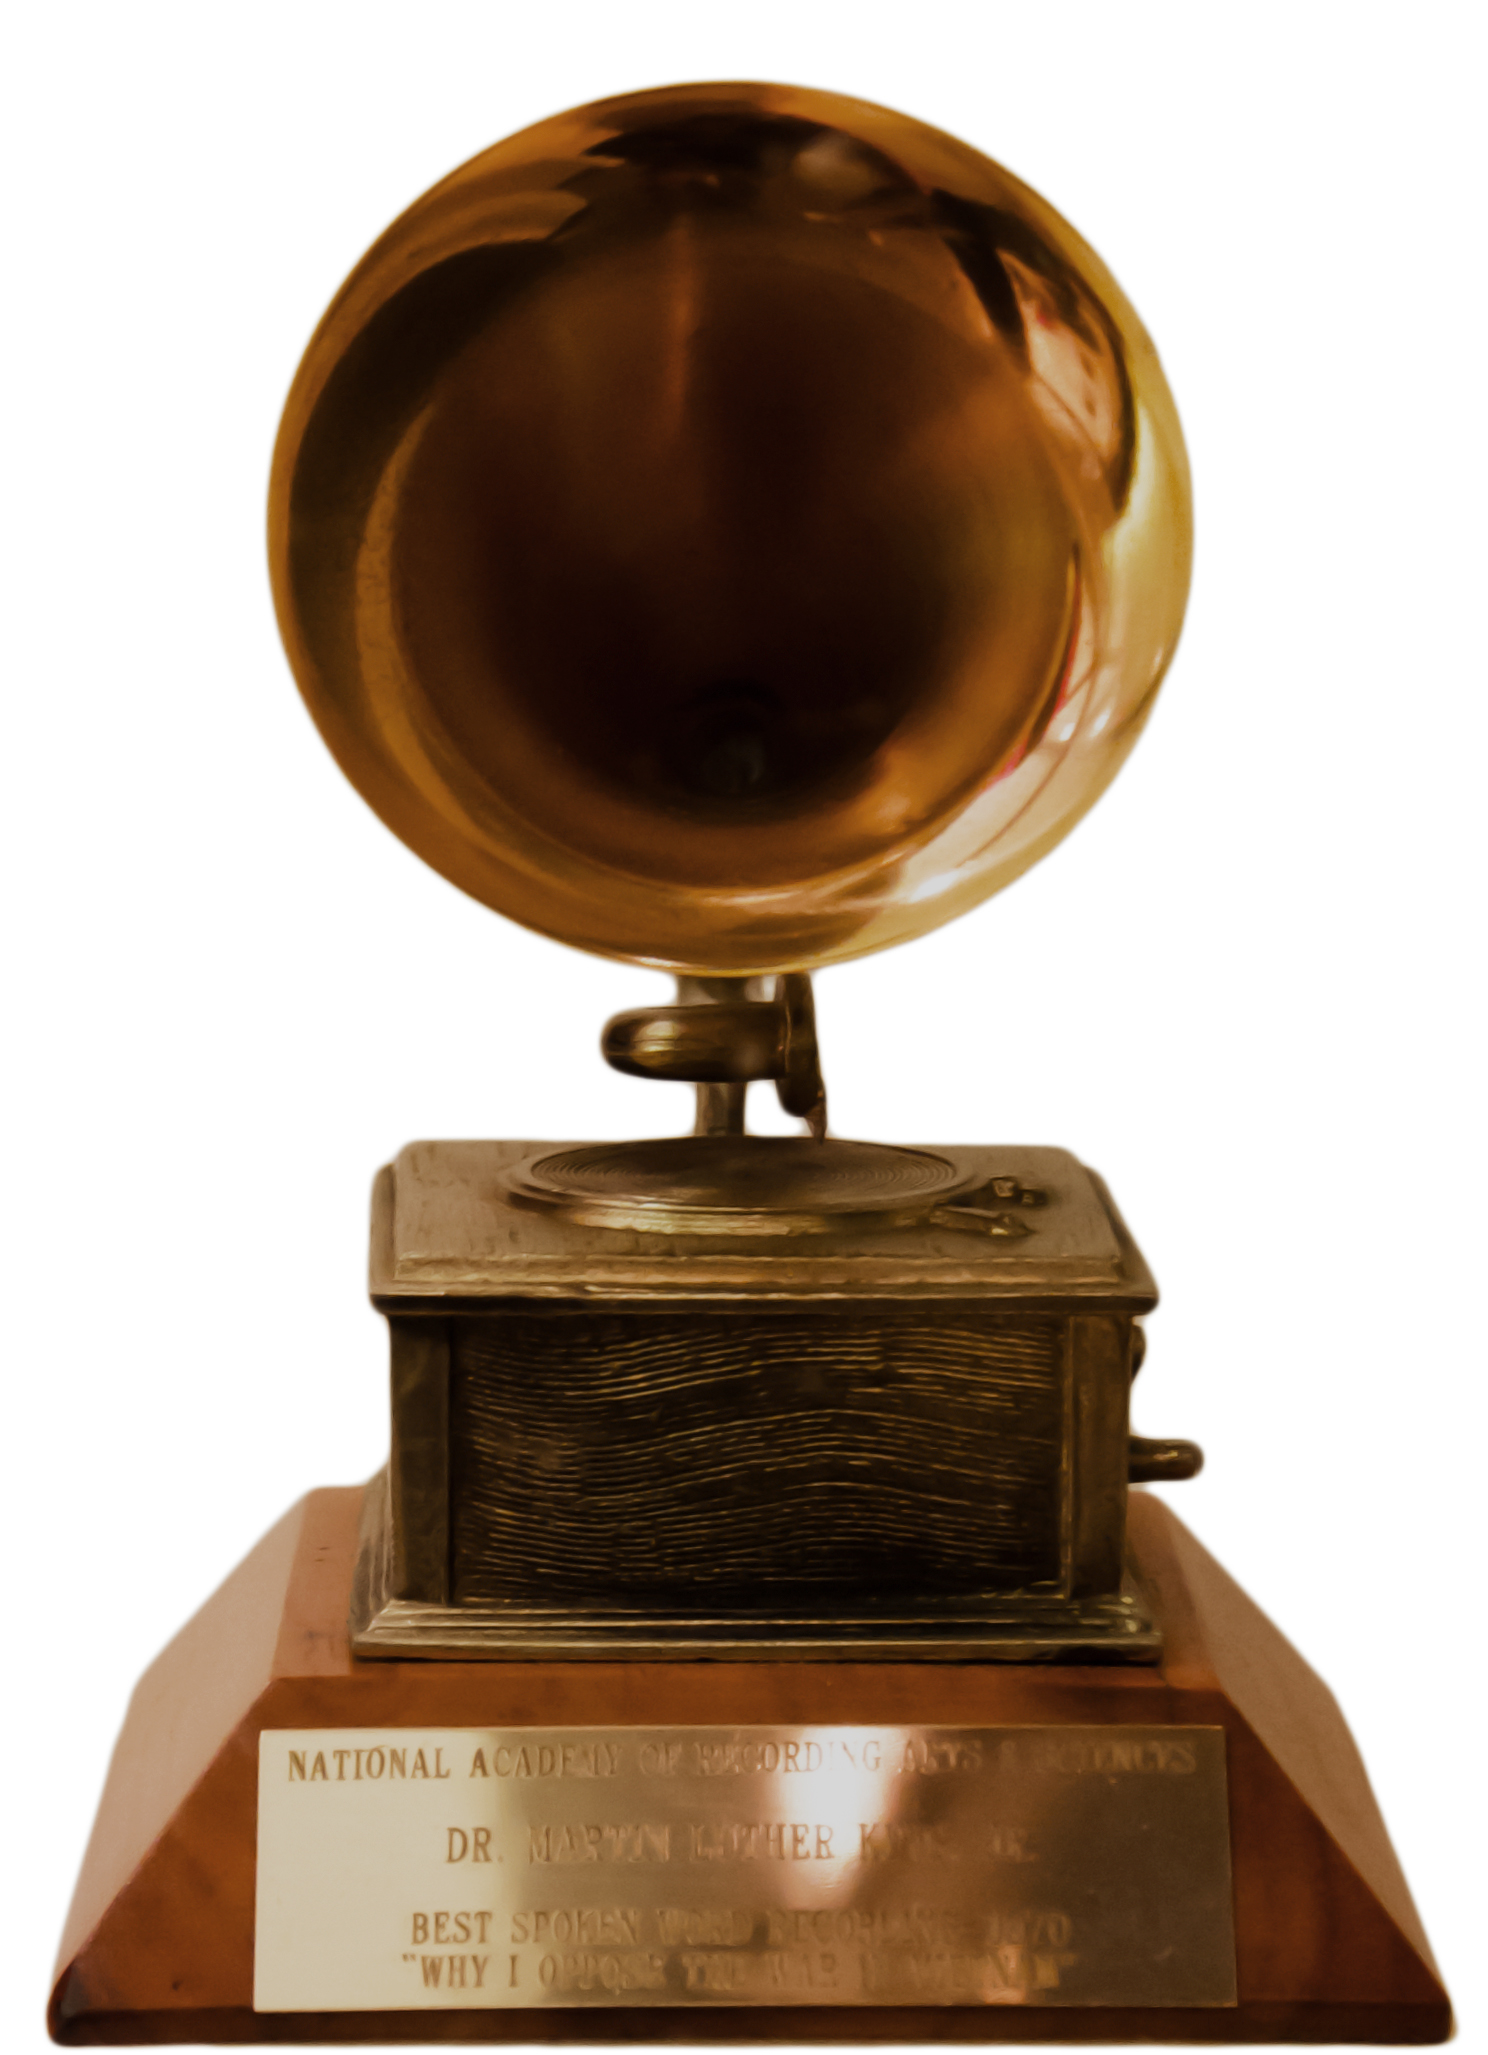 http://upload.wikimedia.org/wikipedia/commons/a/af/Grammy_Award_of_Dr._Martin_Luther_King,_Jr..jpg